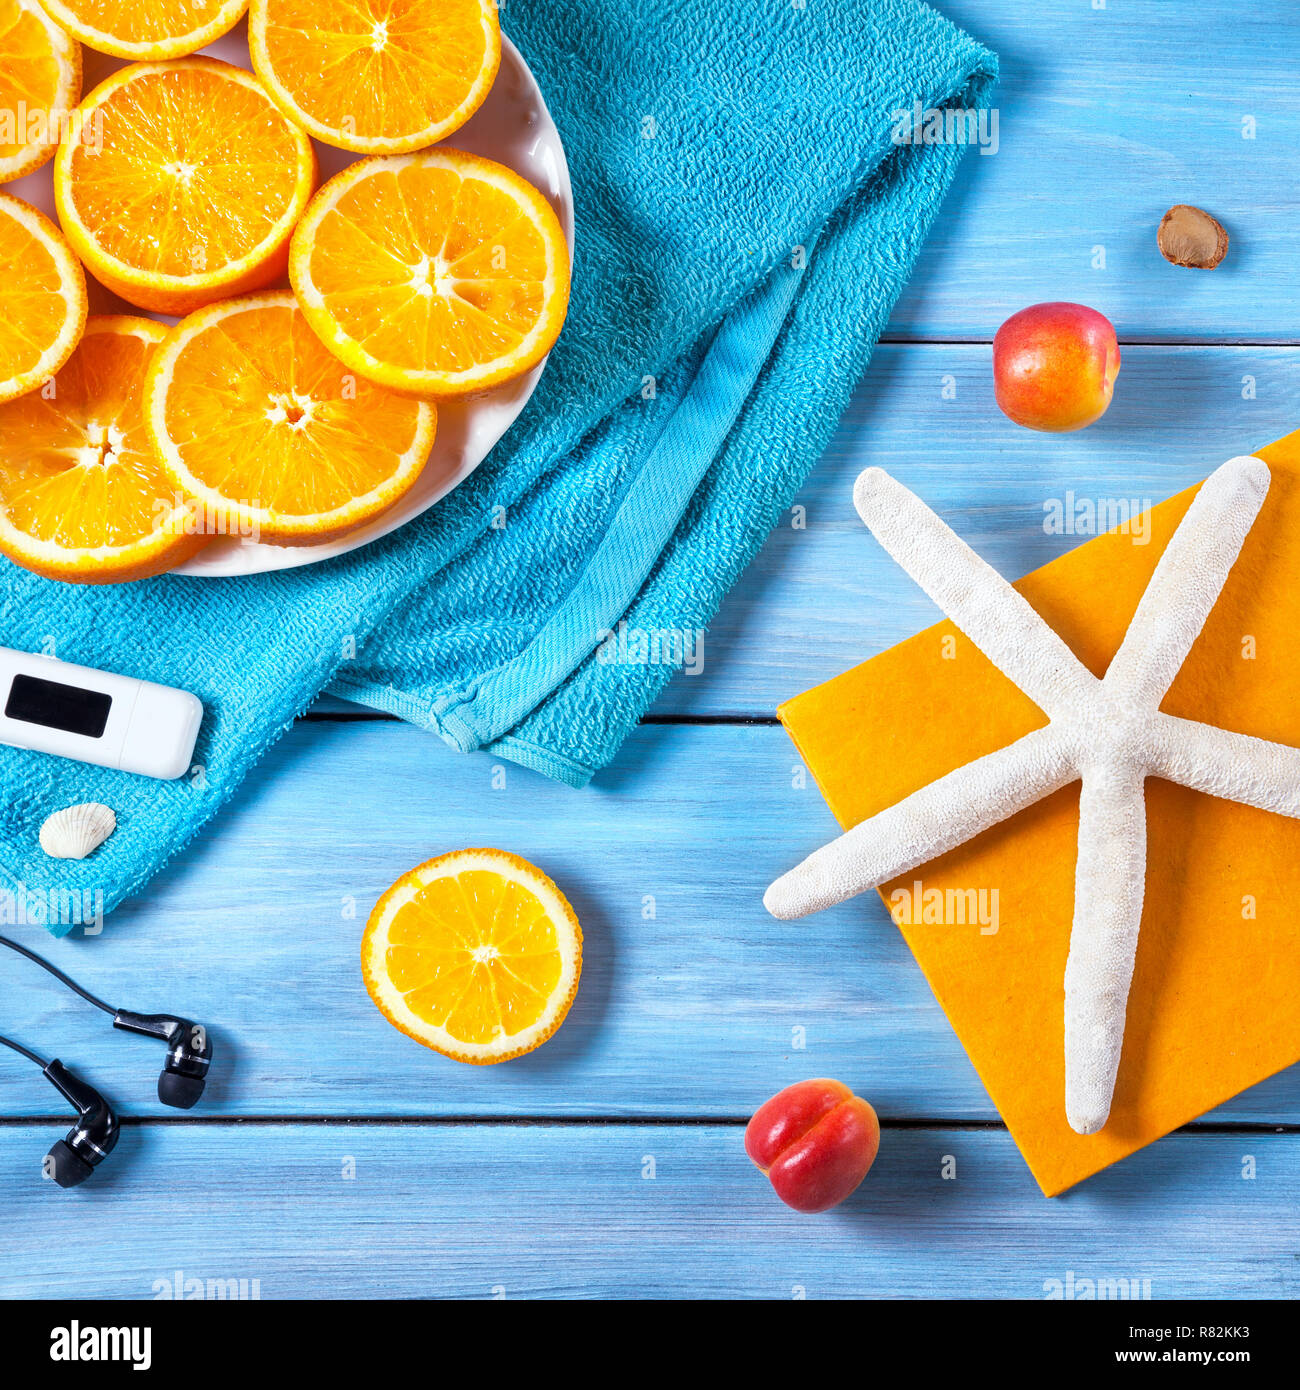 Oranges, towel, headphones and starfish on blue wooden background. Summer holiday concept - Stock Image